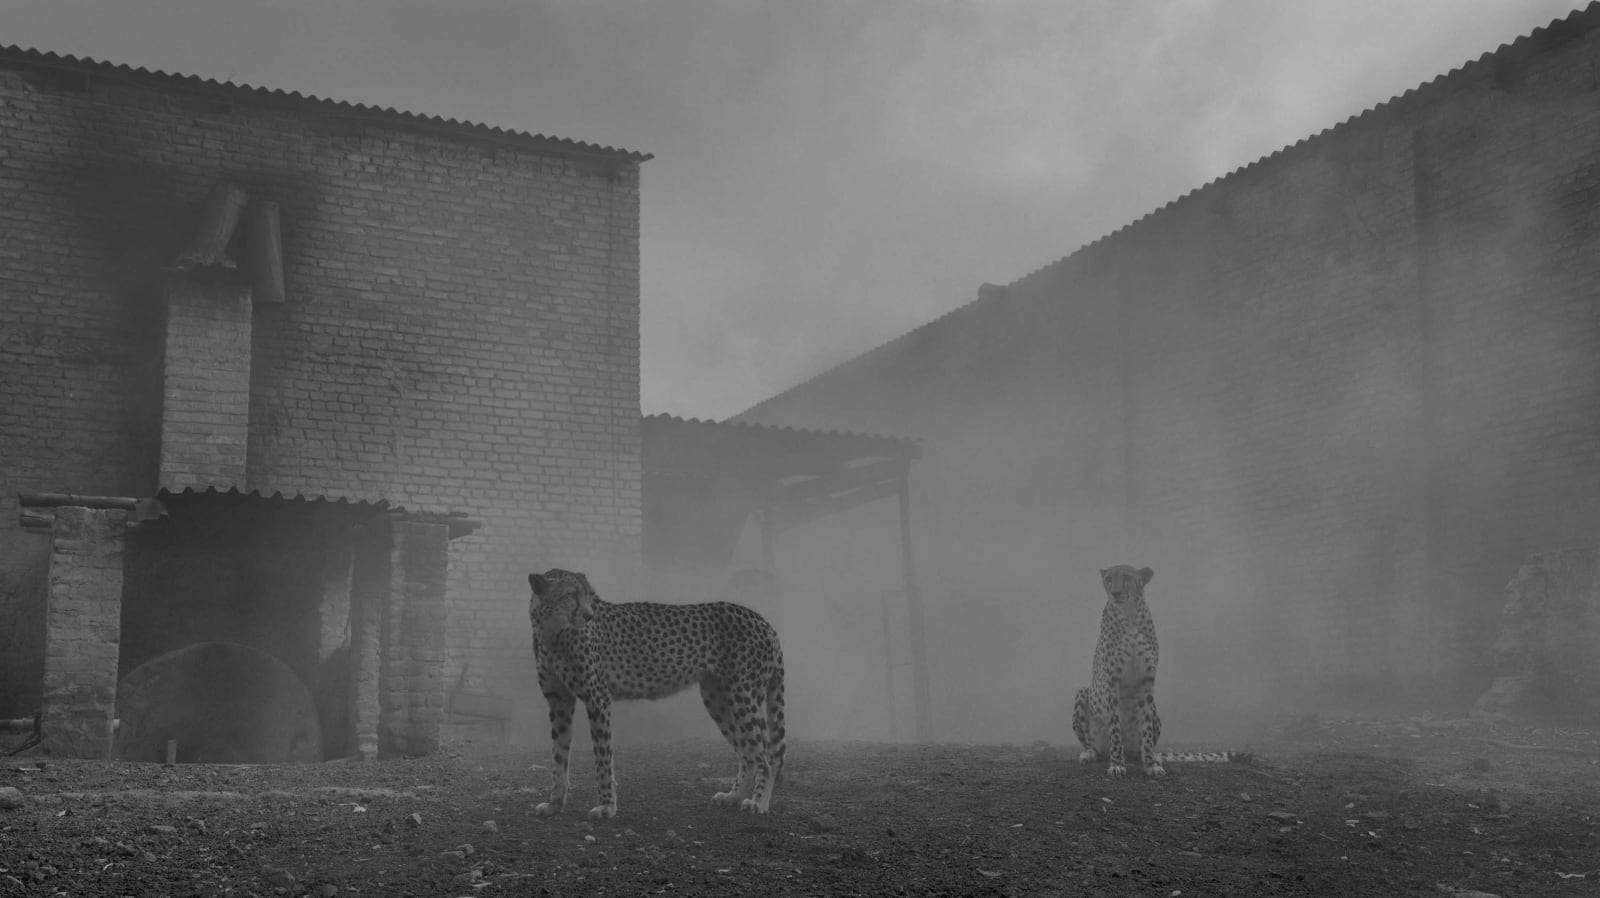 Two cheetahs named Levi and Diesel in tobacco factory covered in fog, by Nick Brandt